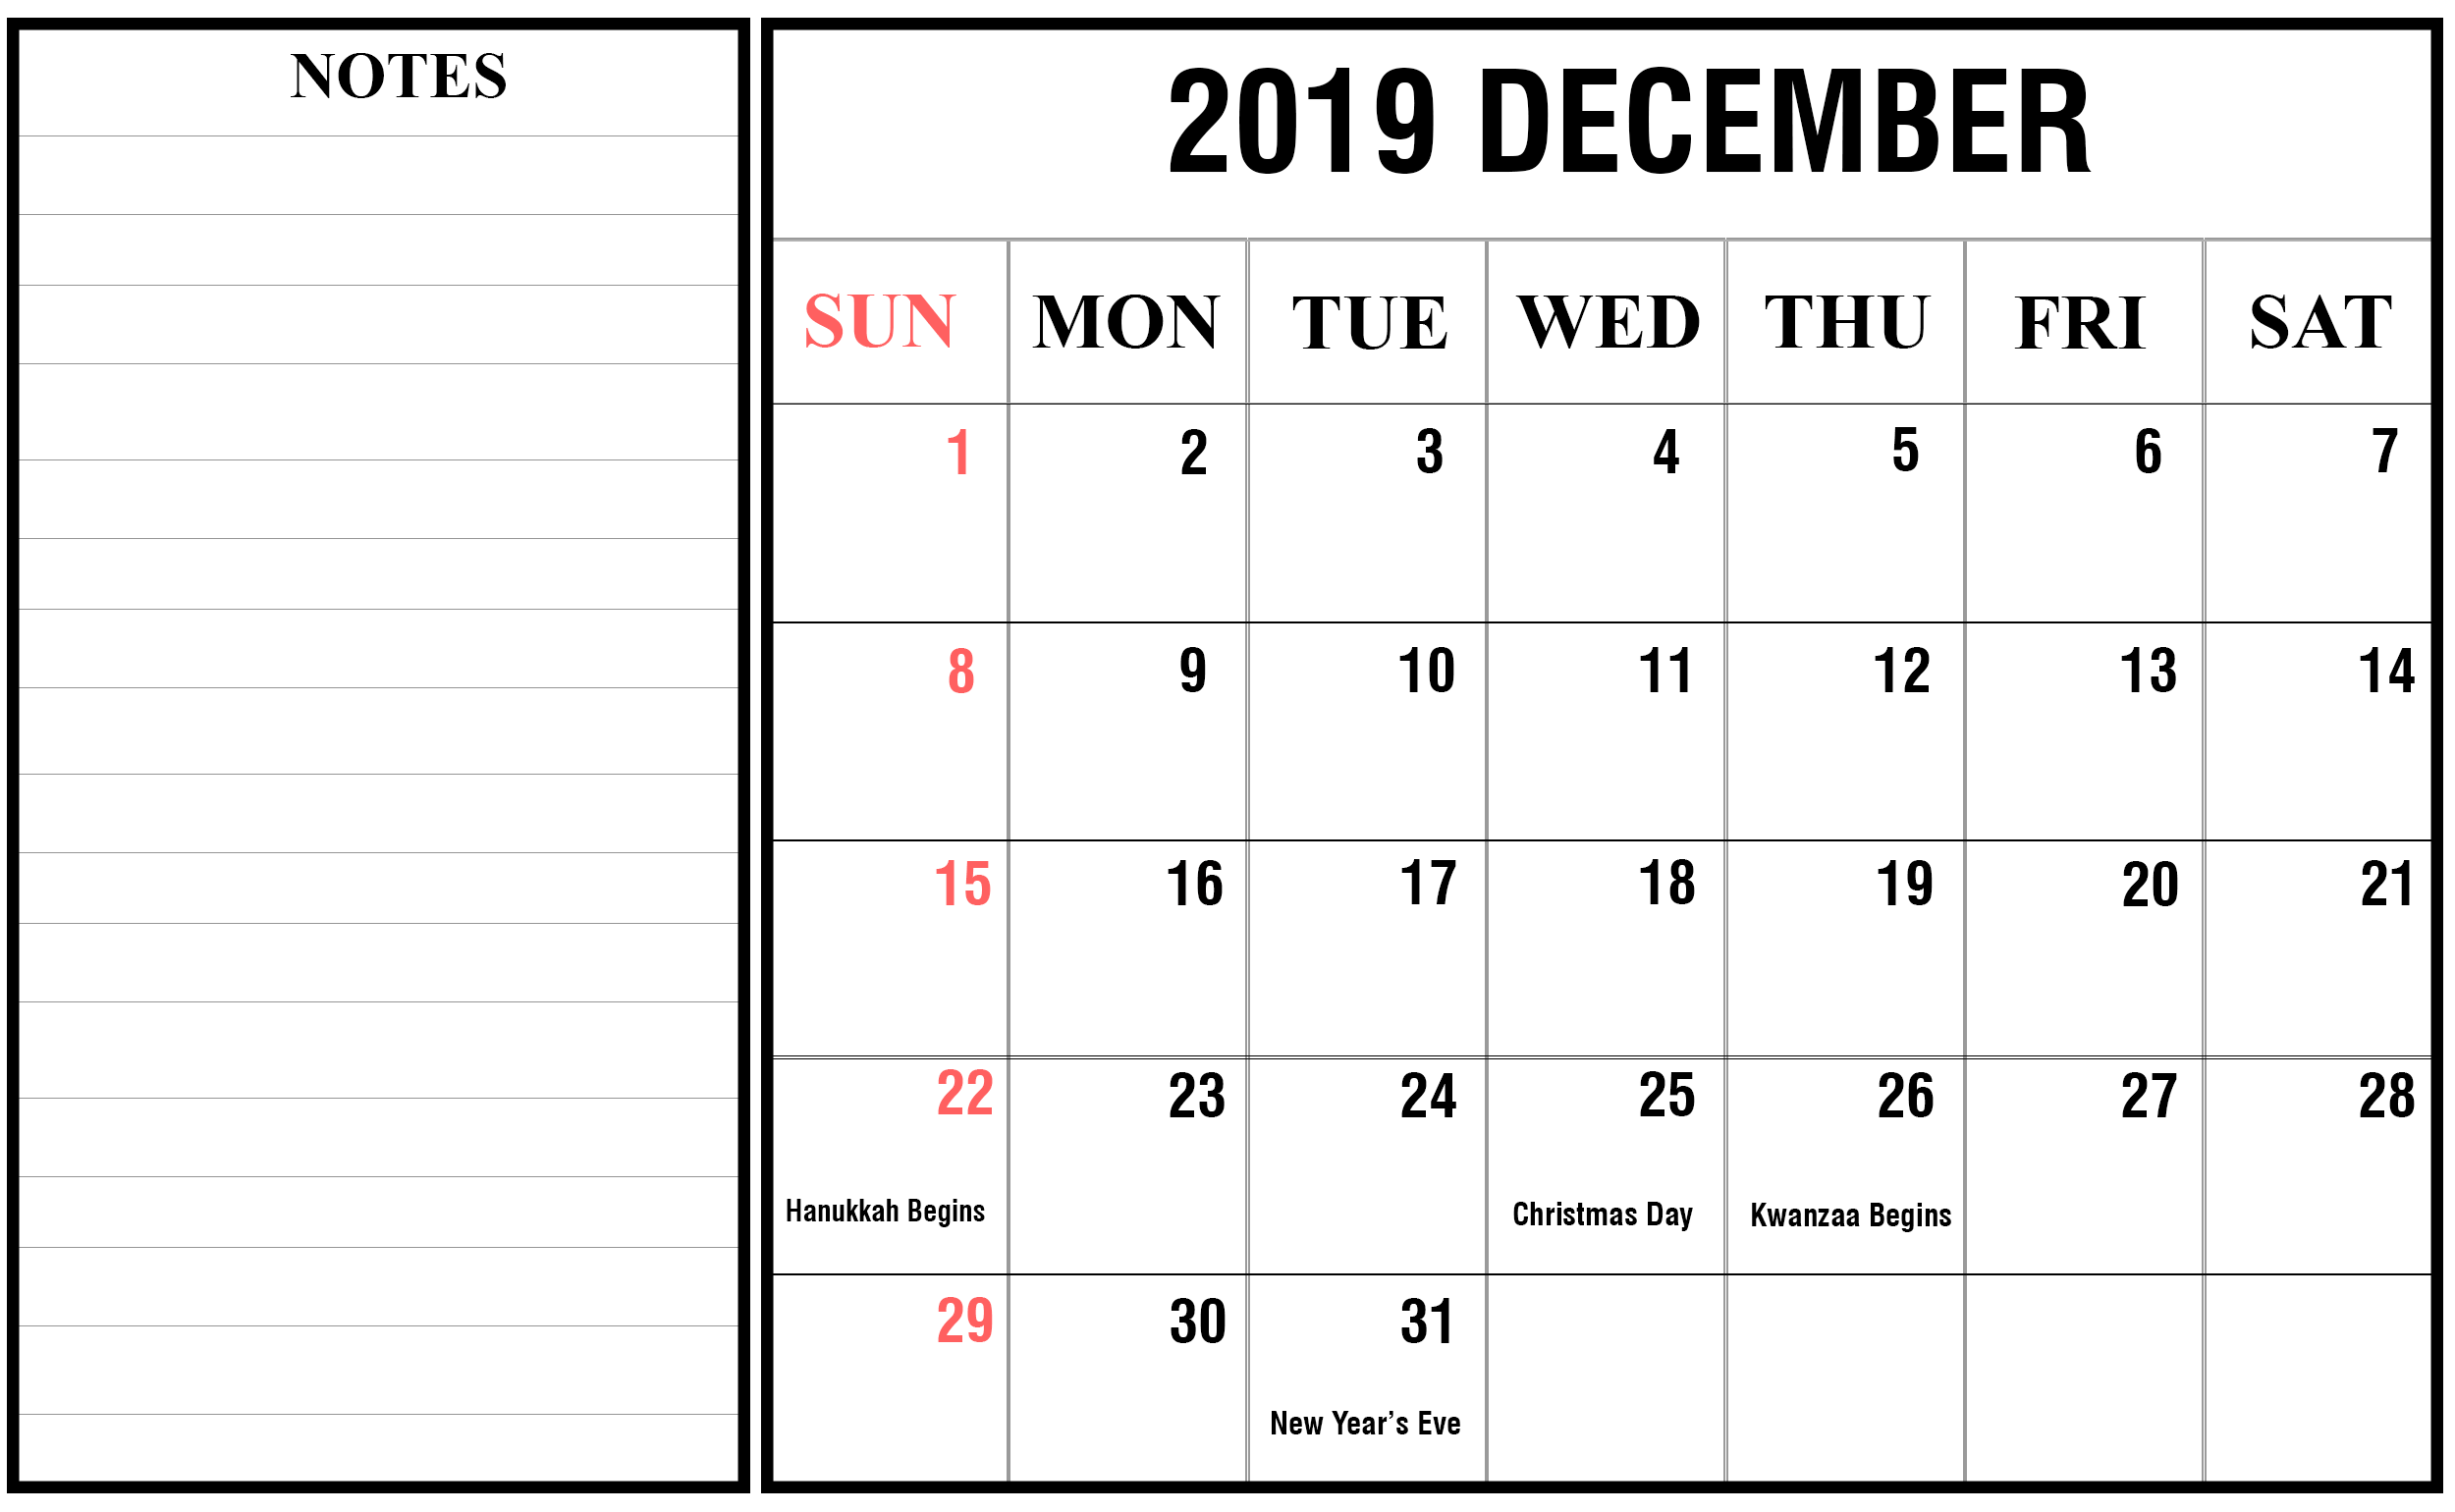 December 2019 Calendar USA with Holidays